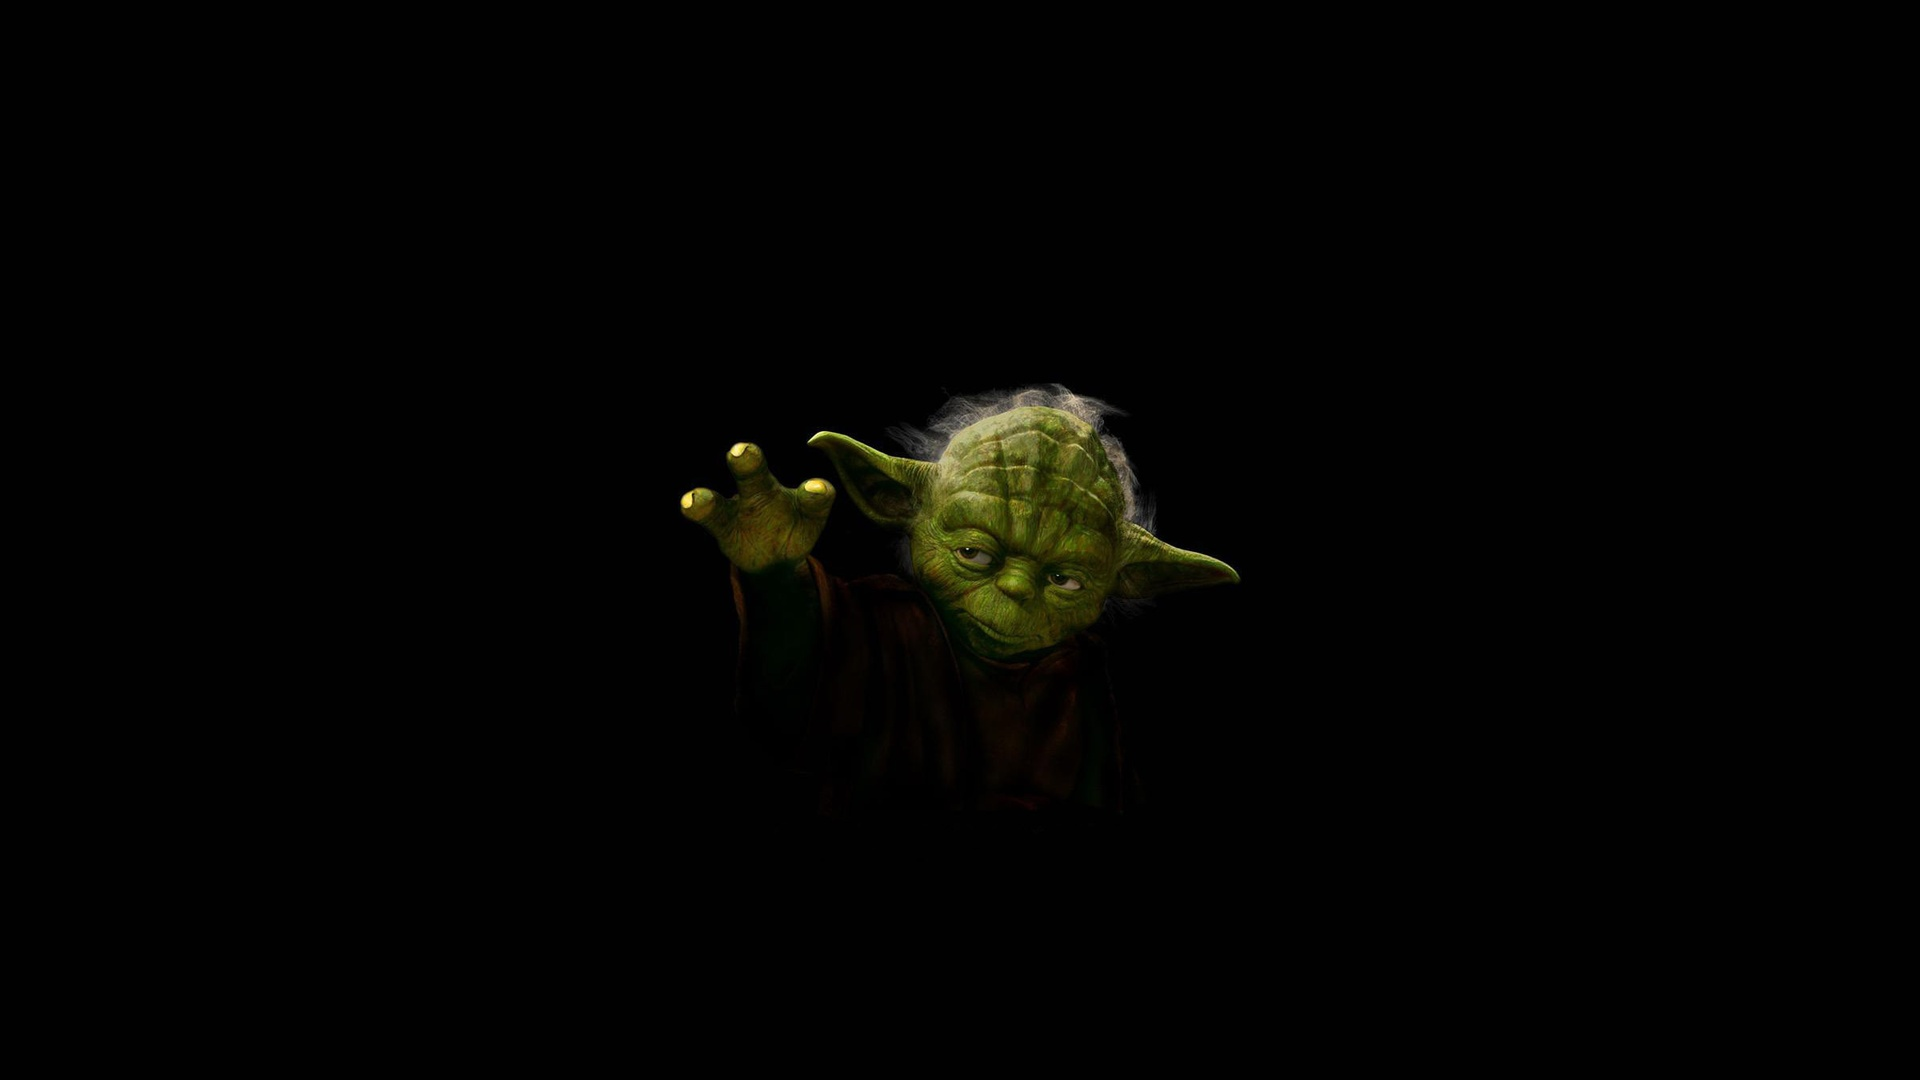 1920×1080 Yoda Wallpaper | The Art Mad Wallpapers: theartmad.com/1920x1080-yoda-wallpaper